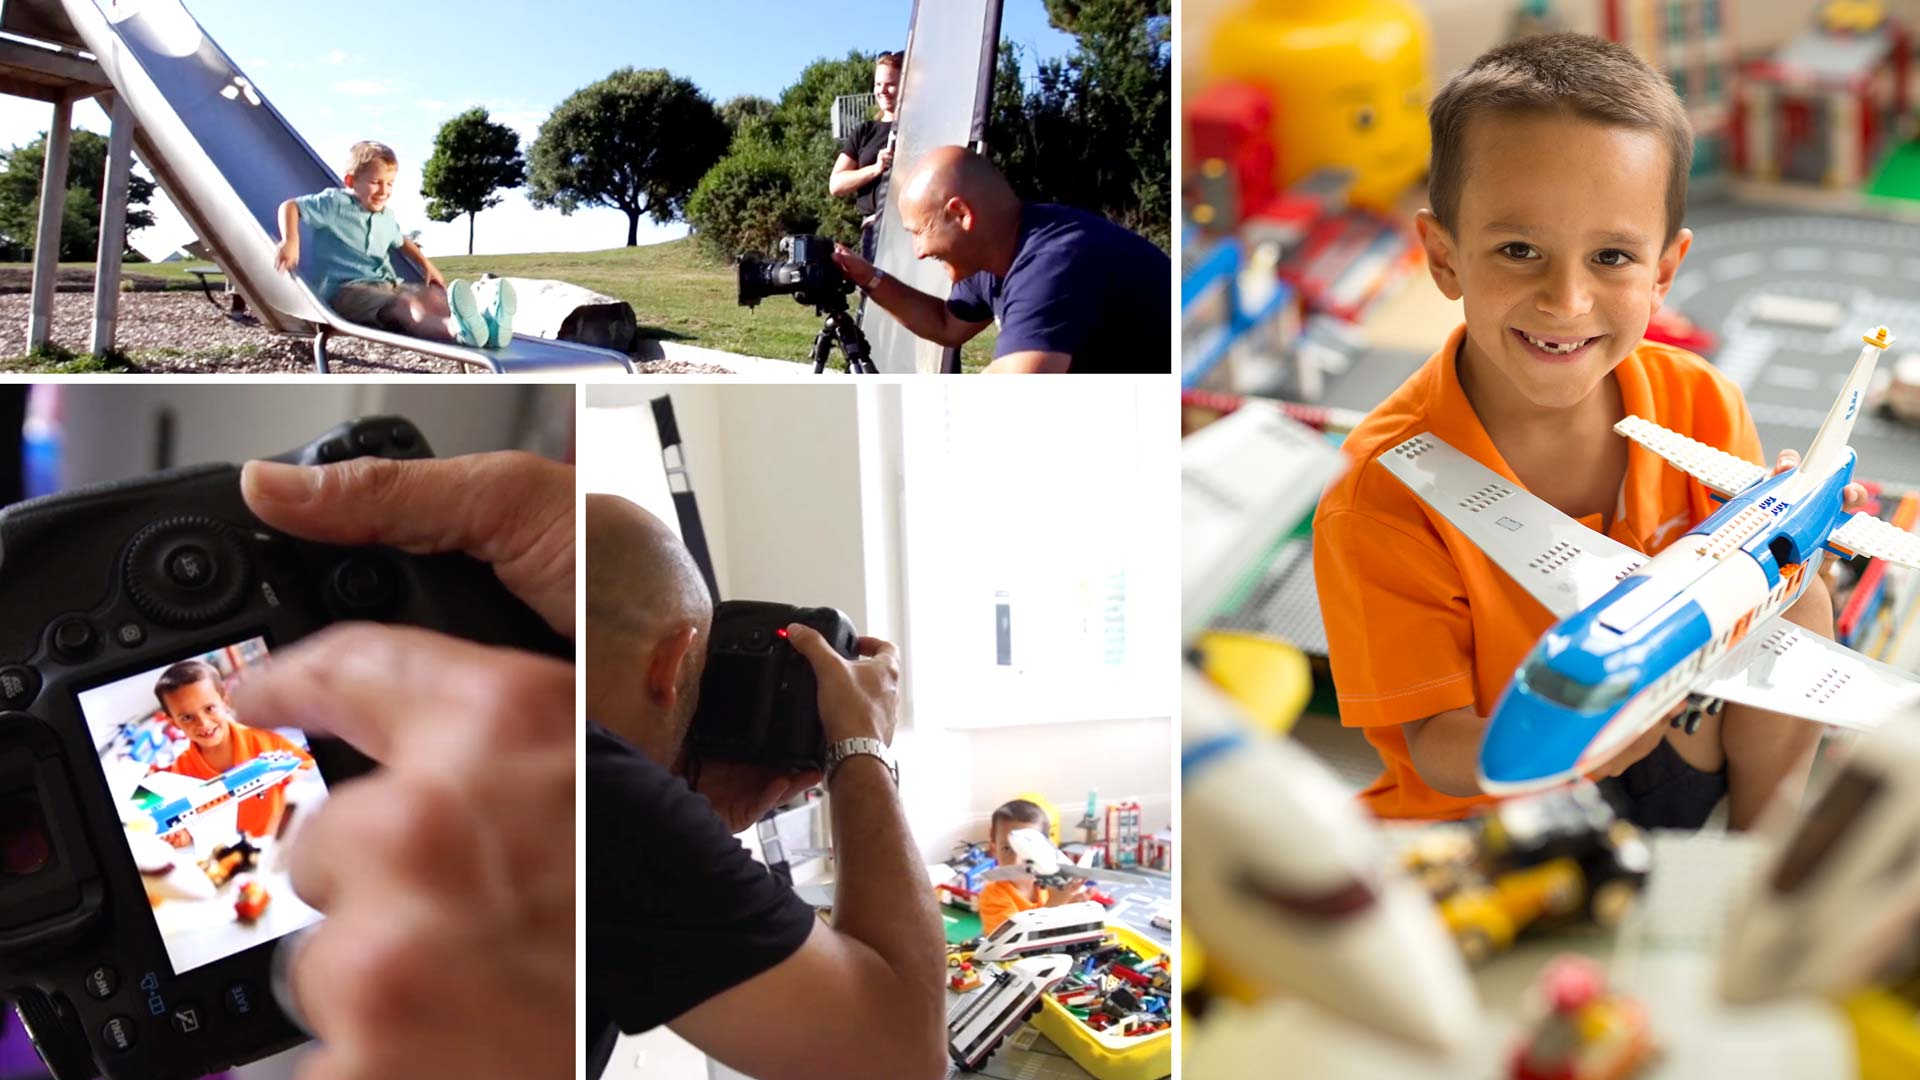 Photographing kids using natural light